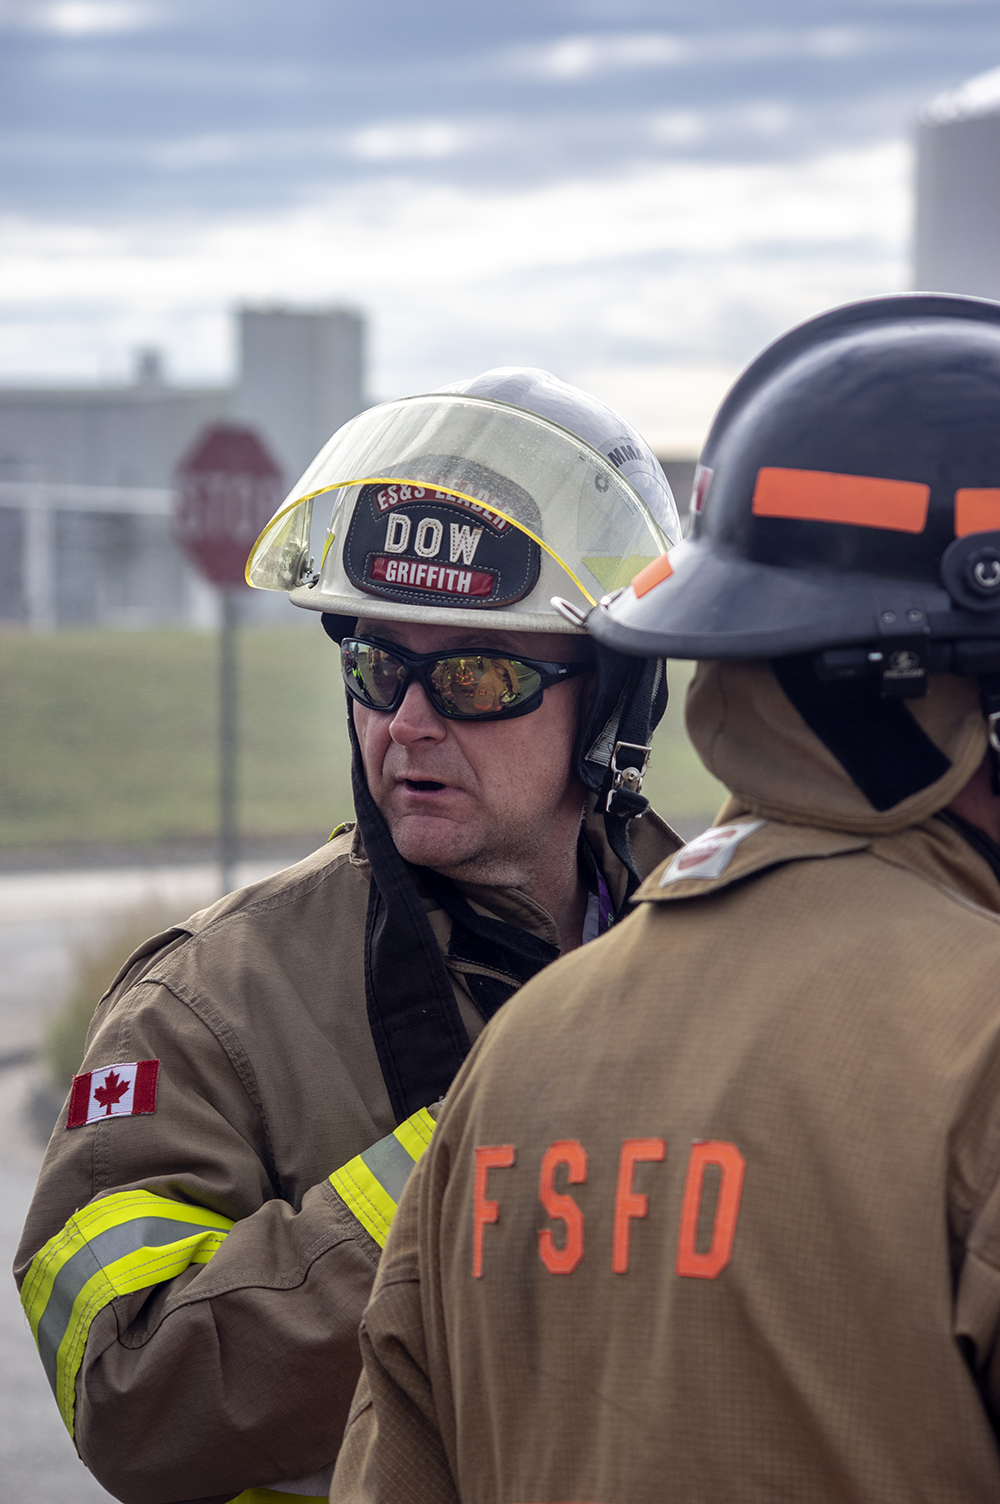 ADJ DOW - Griffith Fireman_Medium_IMG1737.jpg